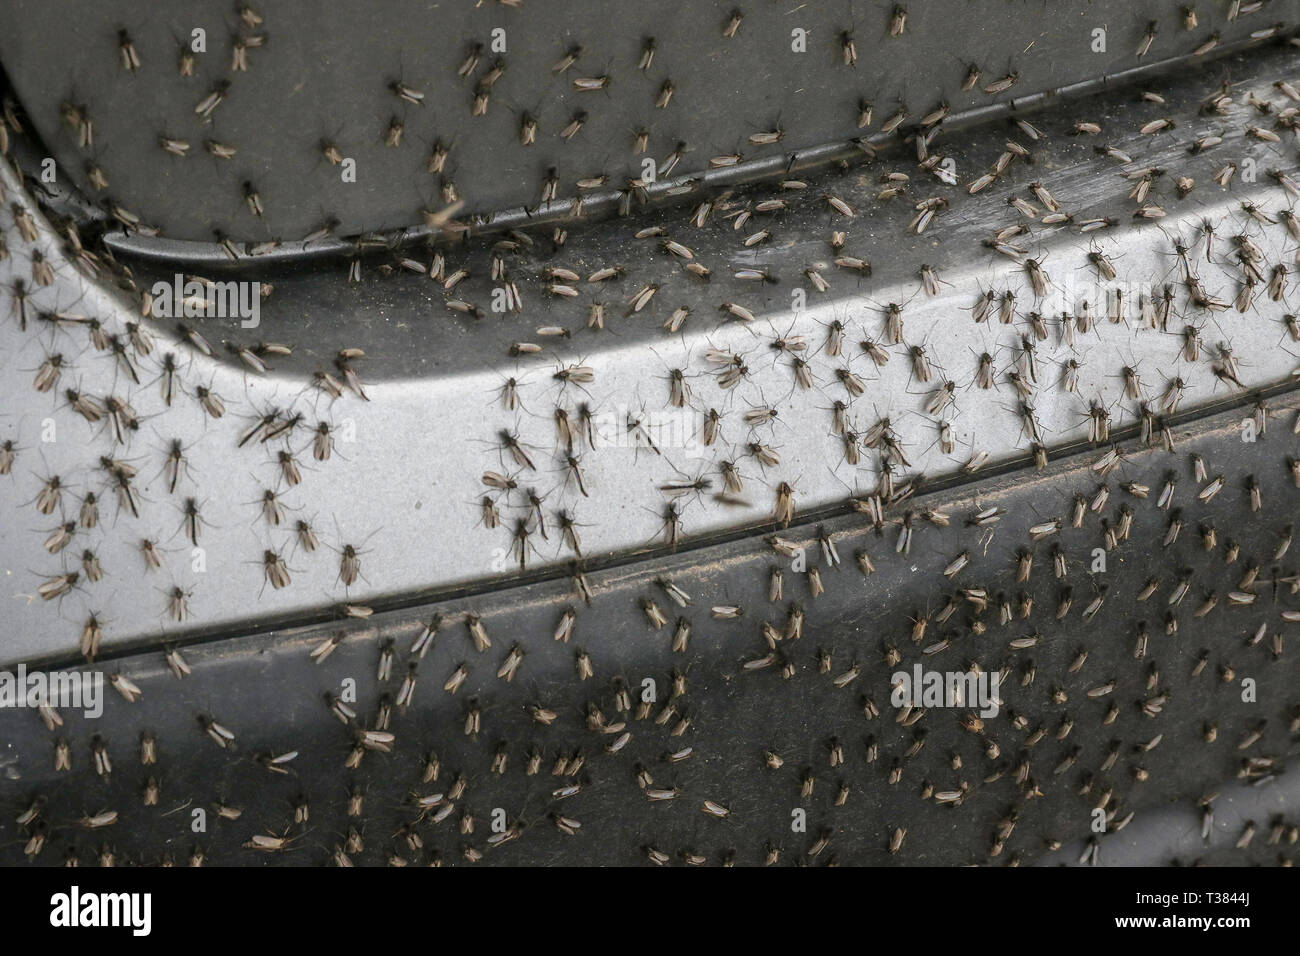 Lough Neagh, County Armagh, Northern Ireland. 07 April 2019. UK weather - a grey day across parts of Northern Ireland. With temperatures around 11C and following yesterday's warm sunshine the mayfly have hatched very early this year in huge numbers around the shores of the lough. Mayflies (ephemeroptera) on a parked car.Credit:CAZIMB/Alamy Live News. - Stock Image